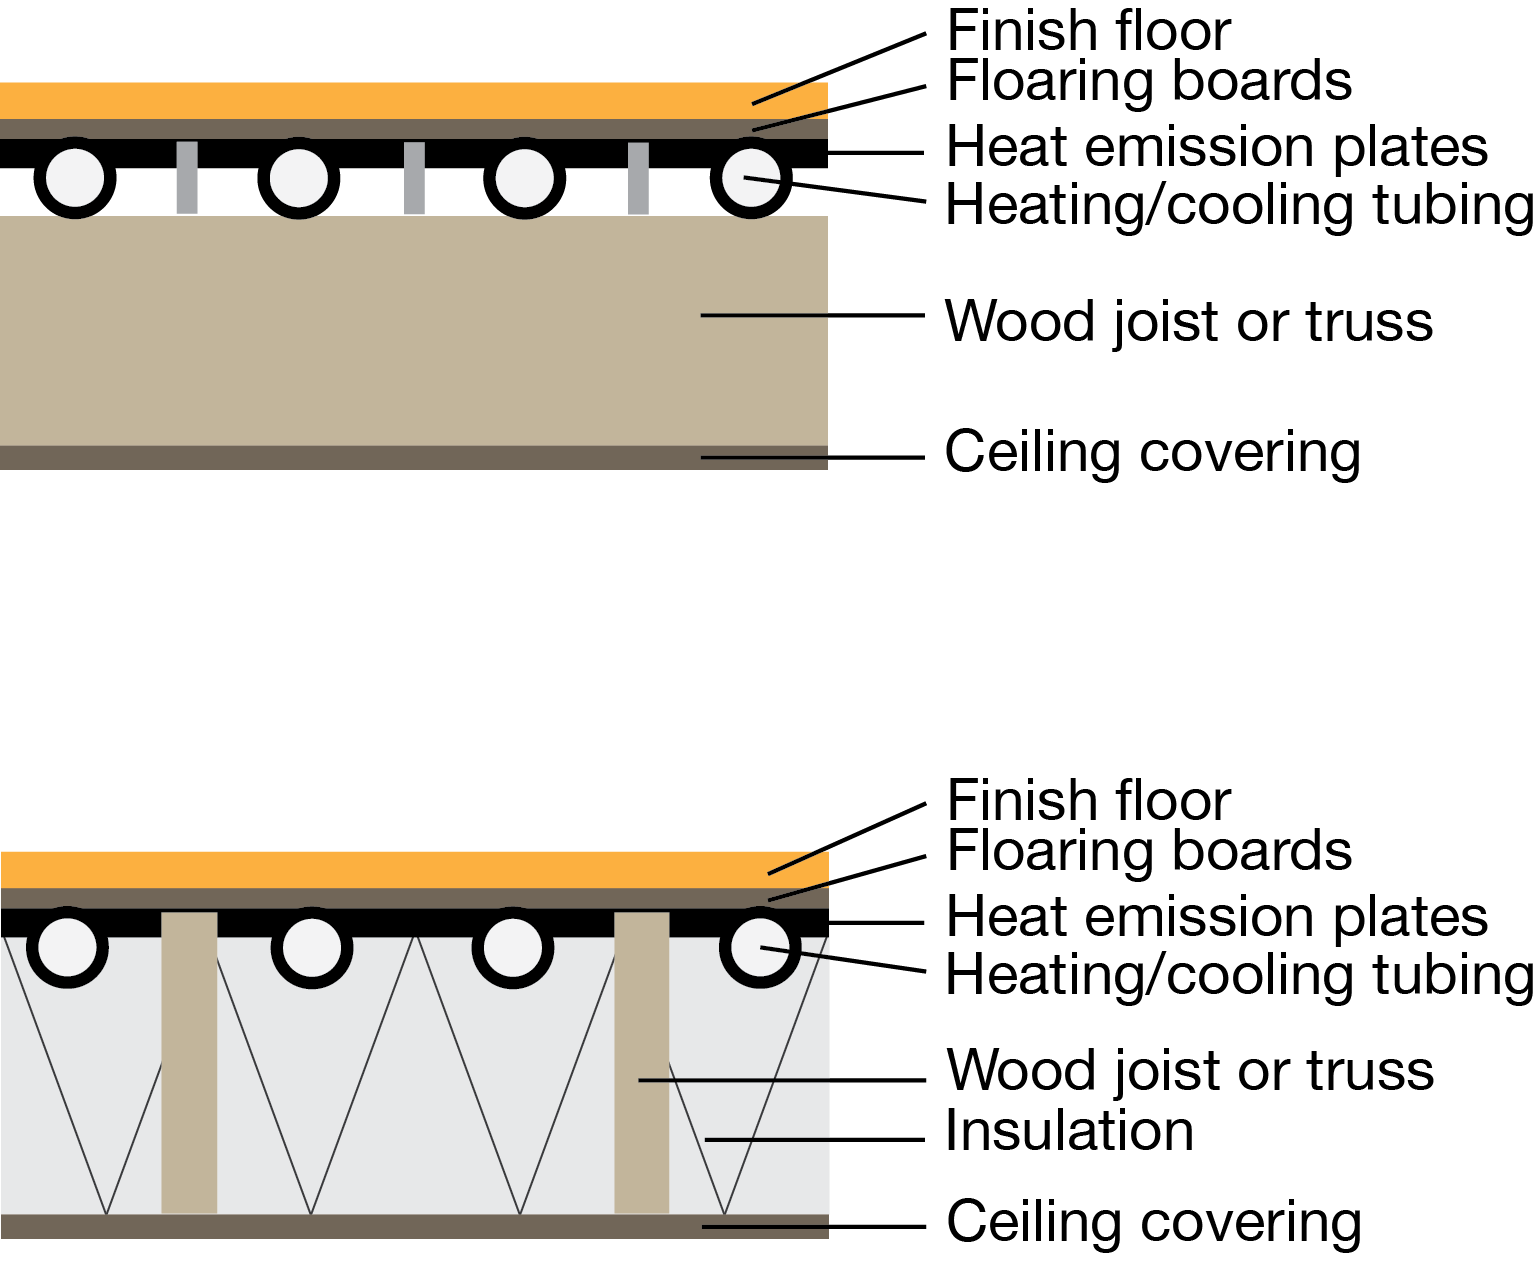 hight resolution of section diagram of a radiant embedded surface system iso 11855 type g